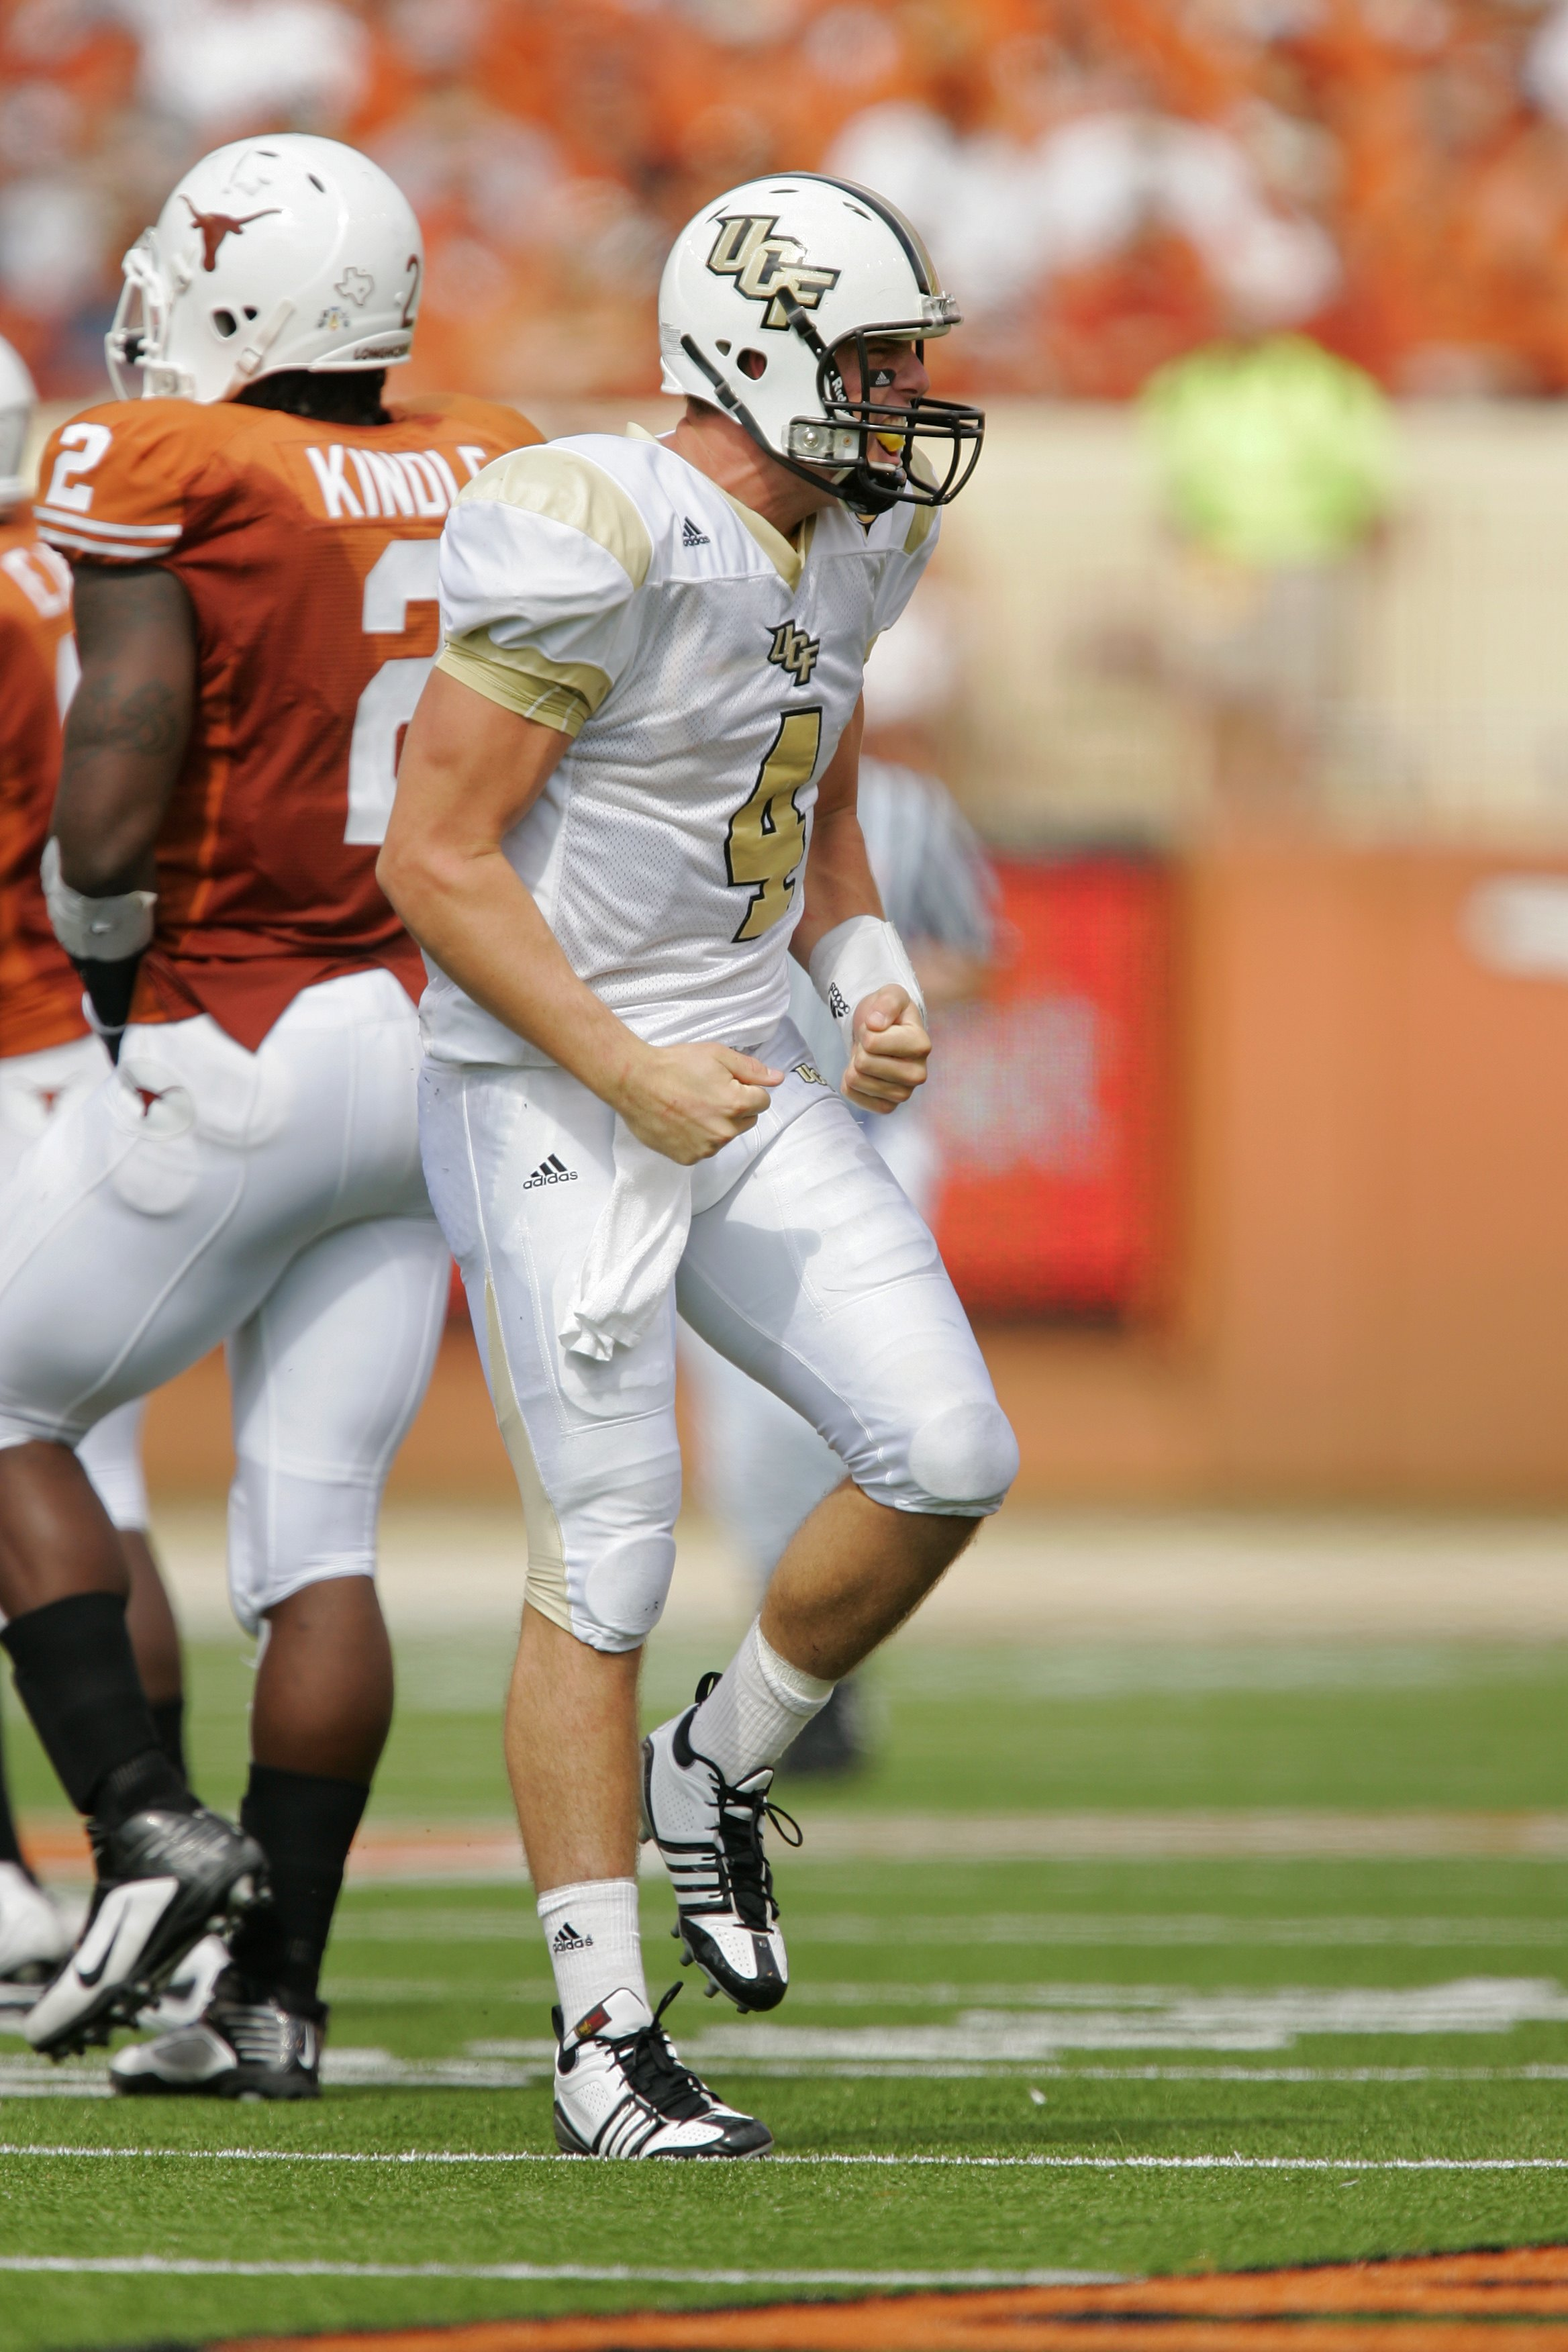 AUSTIN, TX - NOVEMBER 07:  Quarterback Rob Calabrese #4 of the UCF Knights celebrates a first down against the Texas Longhorns on November 7, 2009 at Darrell K Royal - Texas Memorial Stadium in Austin, Texas.  Texas won 35-3.  (Photo by Brian Bahr/Getty I